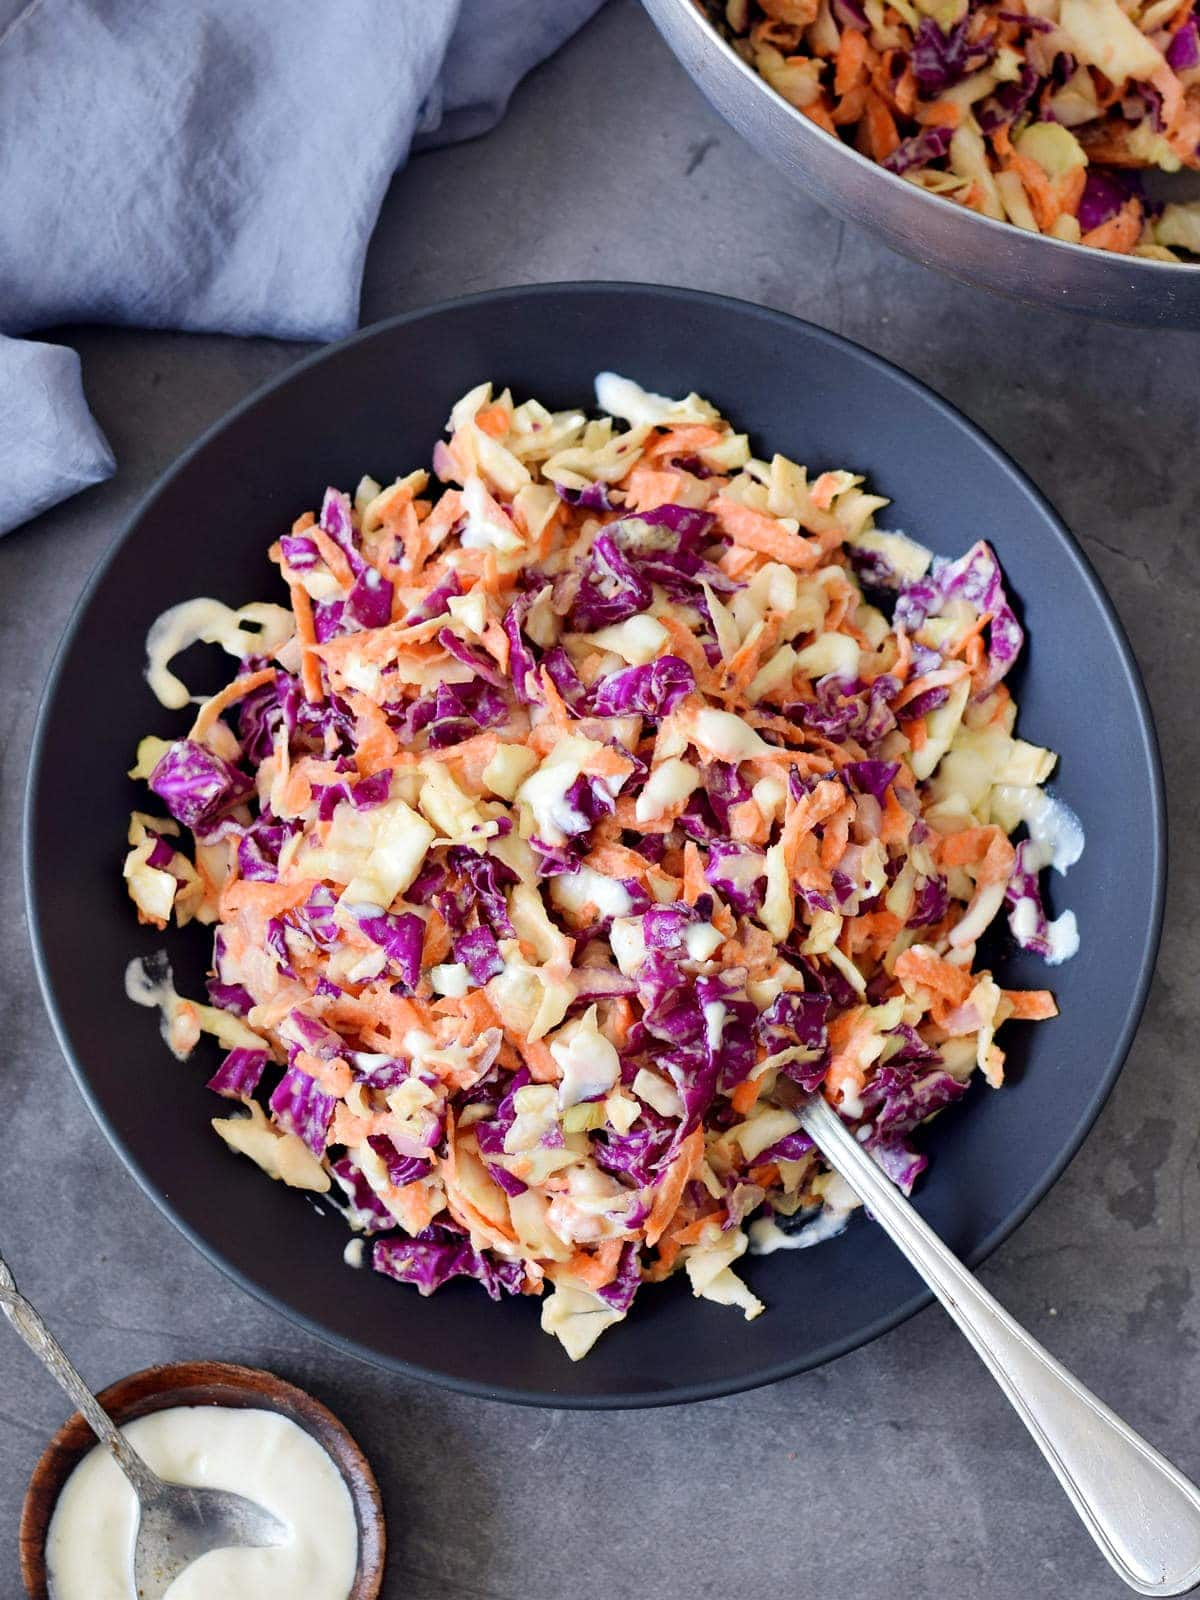 keto coleslaw in a black bowl with a fork